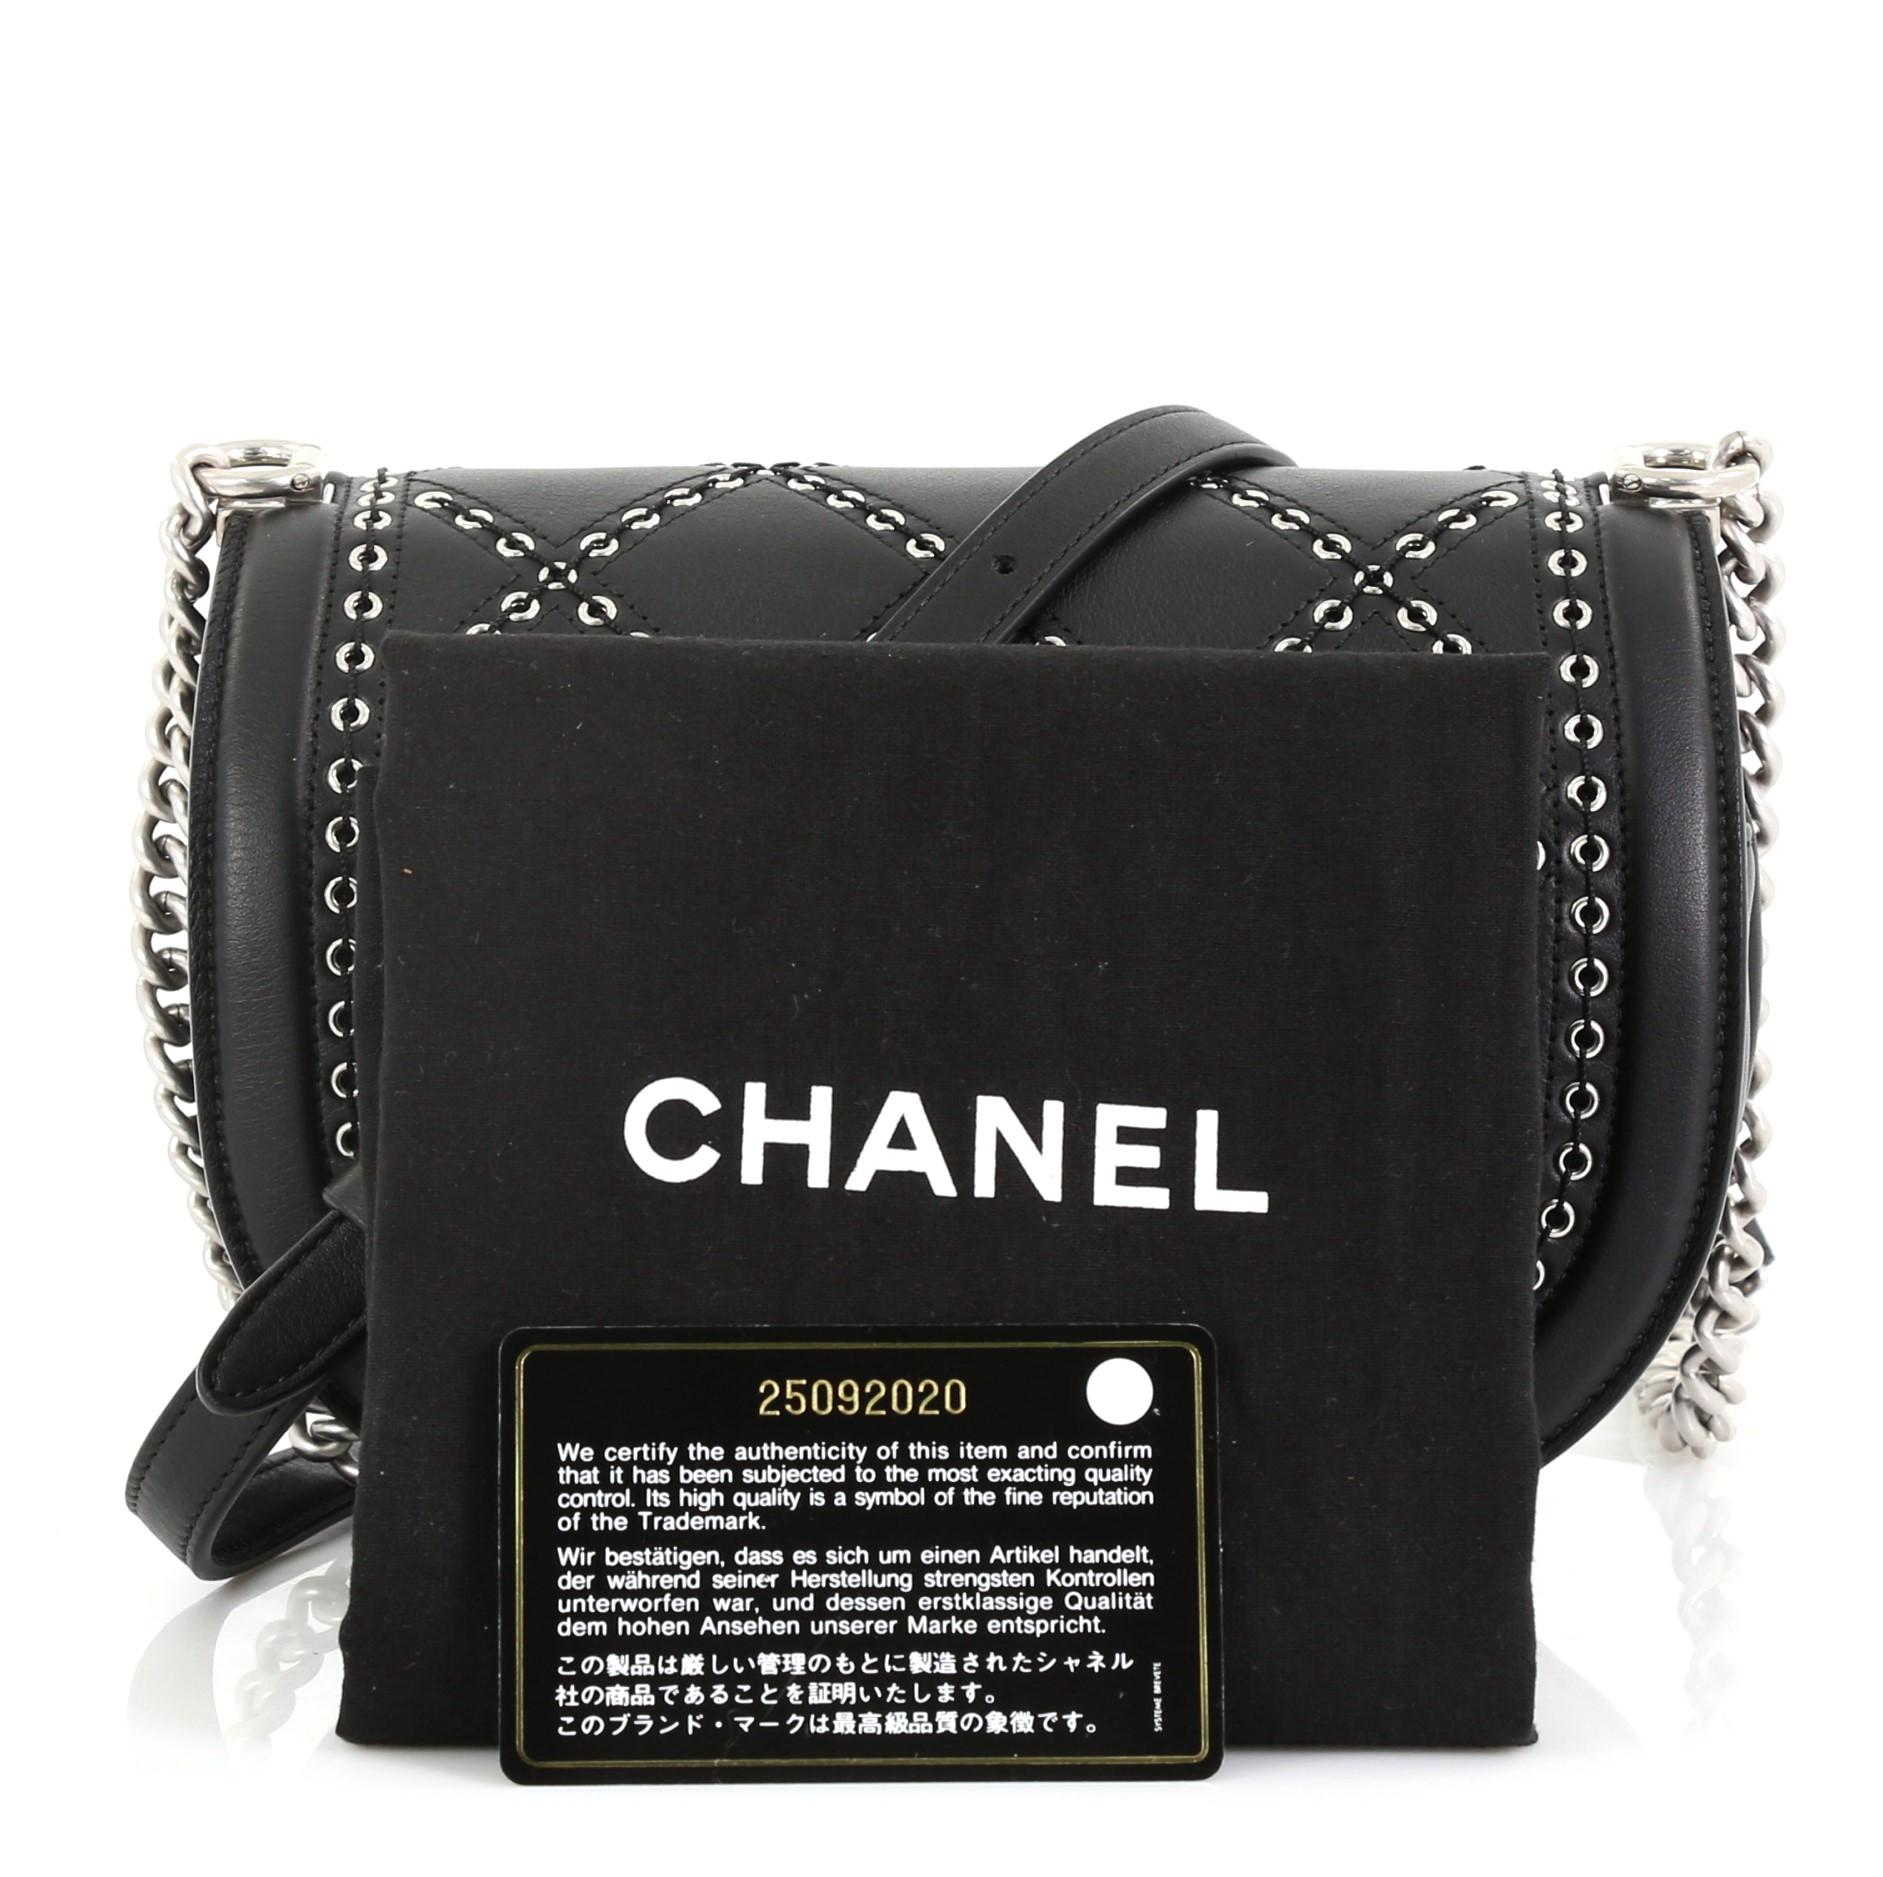 dcc186420a62 Chanel Coco Eyelets Round Flap Bag Quilted Calfskin Small For Sale at  1stdibs